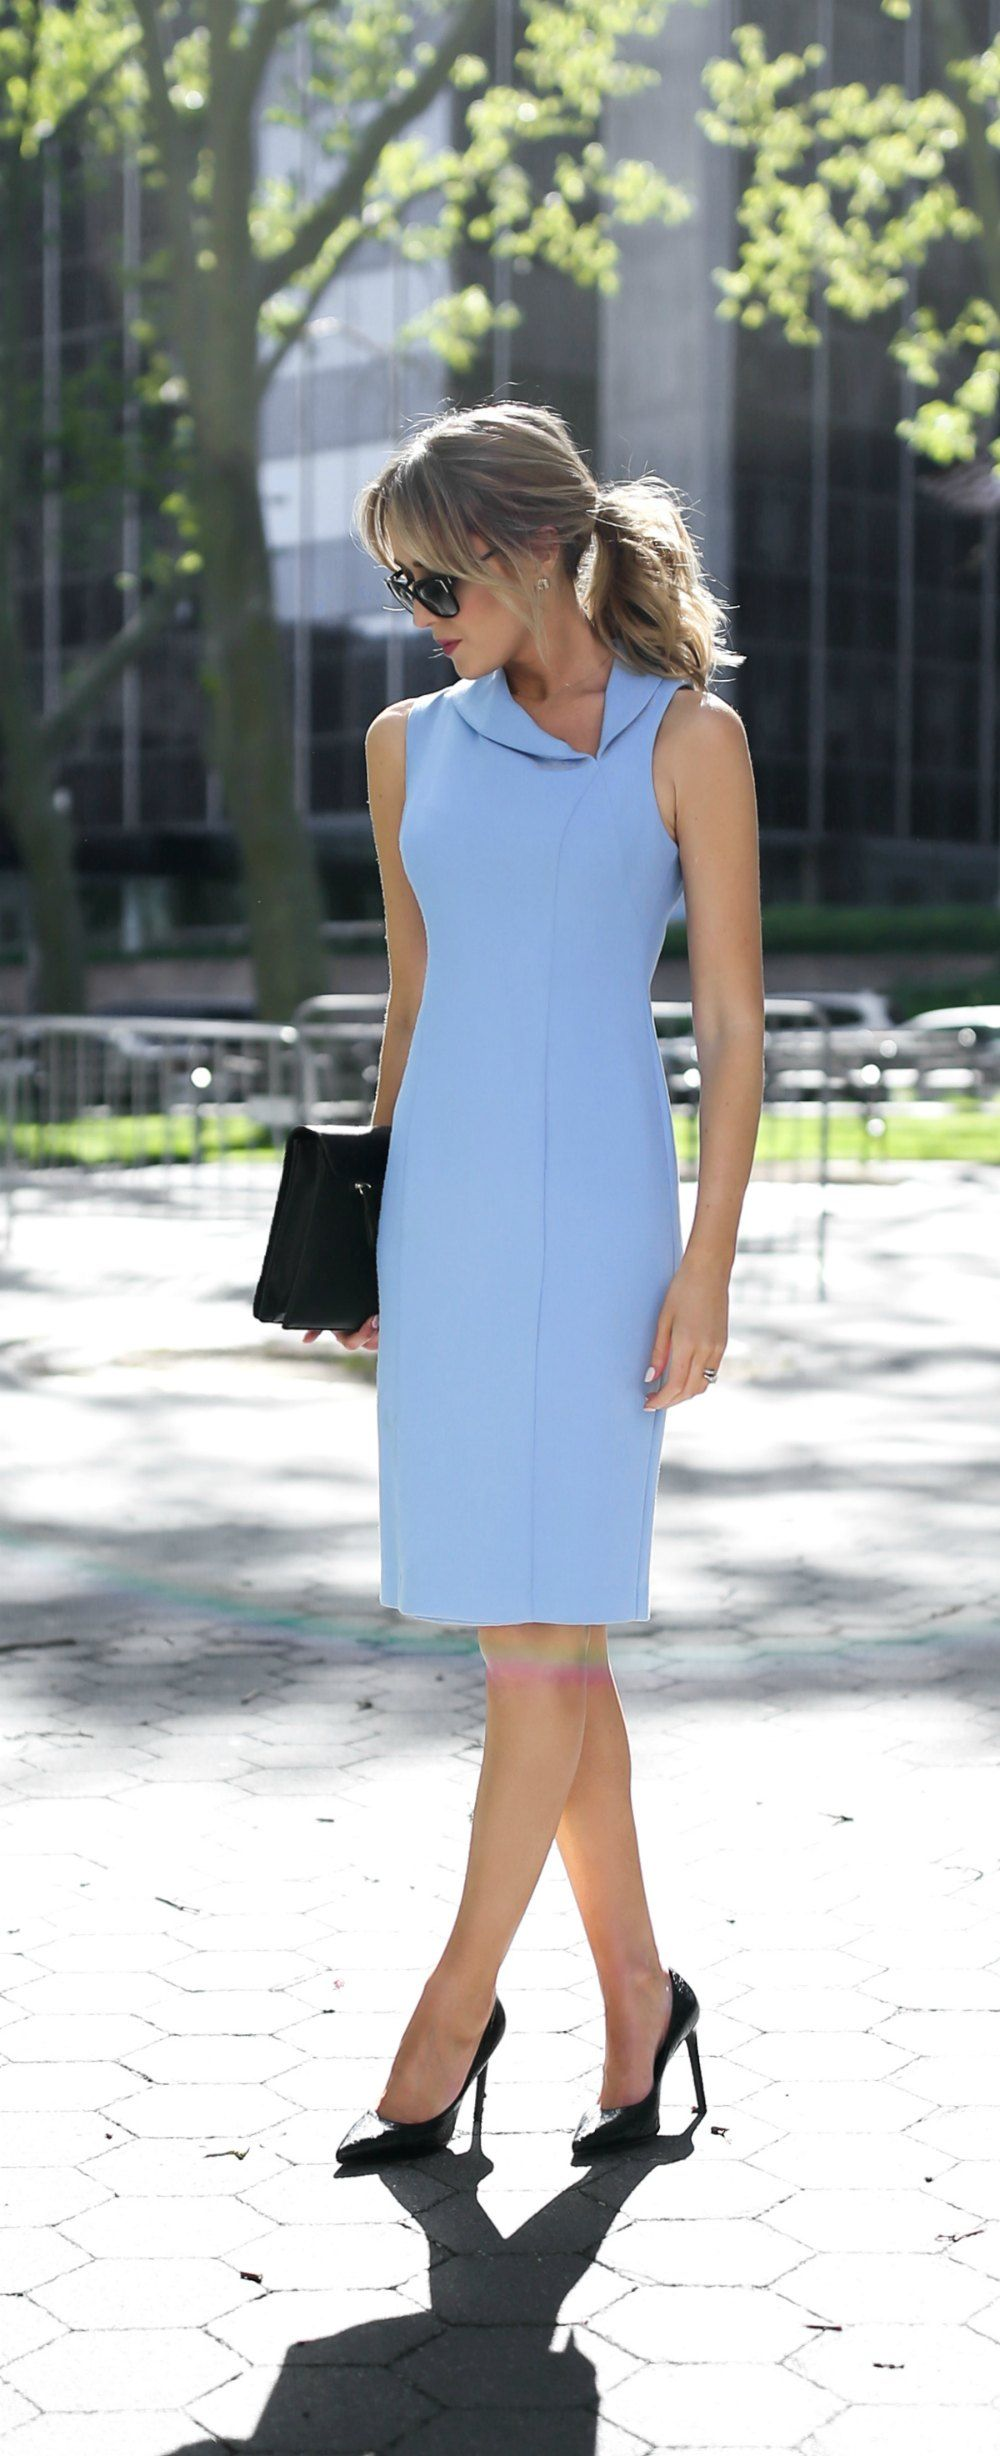 Classic Periwinkle Blue Knee Length Sheath Dress With Asymmetrical Shawl Collar Neckline Summer Business Fo Fashion Sheath Dresses Work Professional Outfits [ 2456 x 1000 Pixel ]